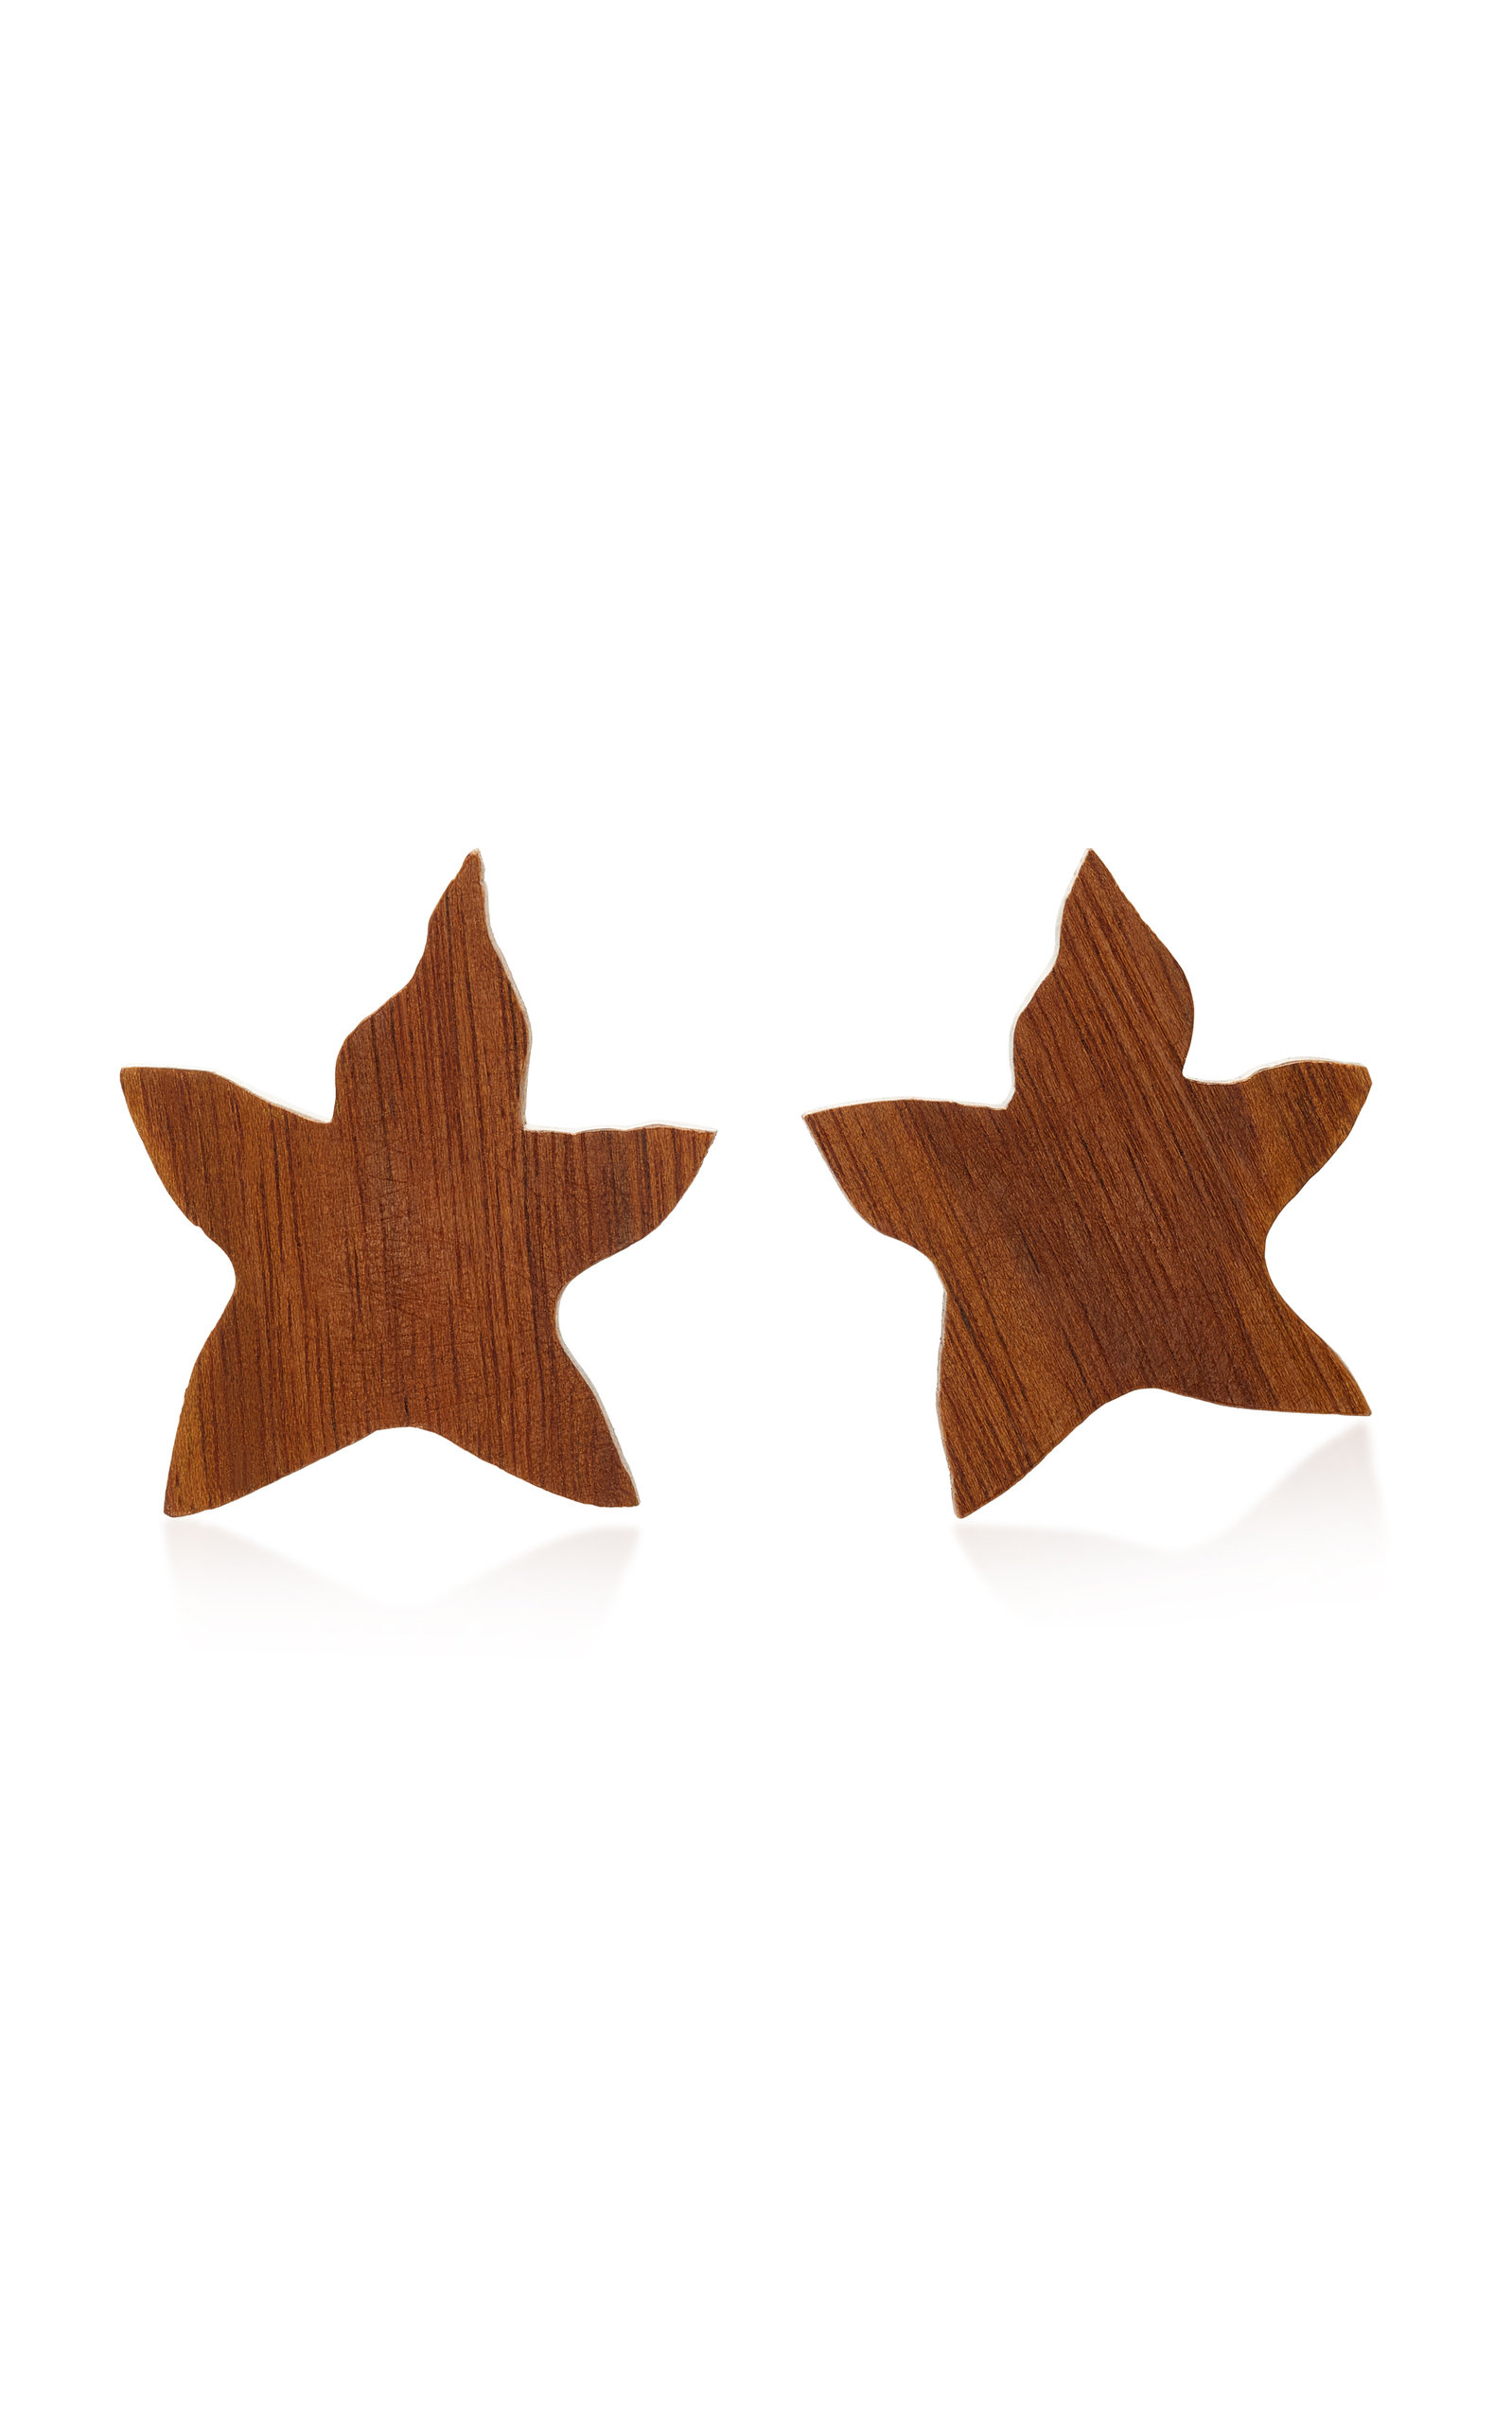 SOPHIE MONET THE LILY SHEDUA WOOD EARRINGS